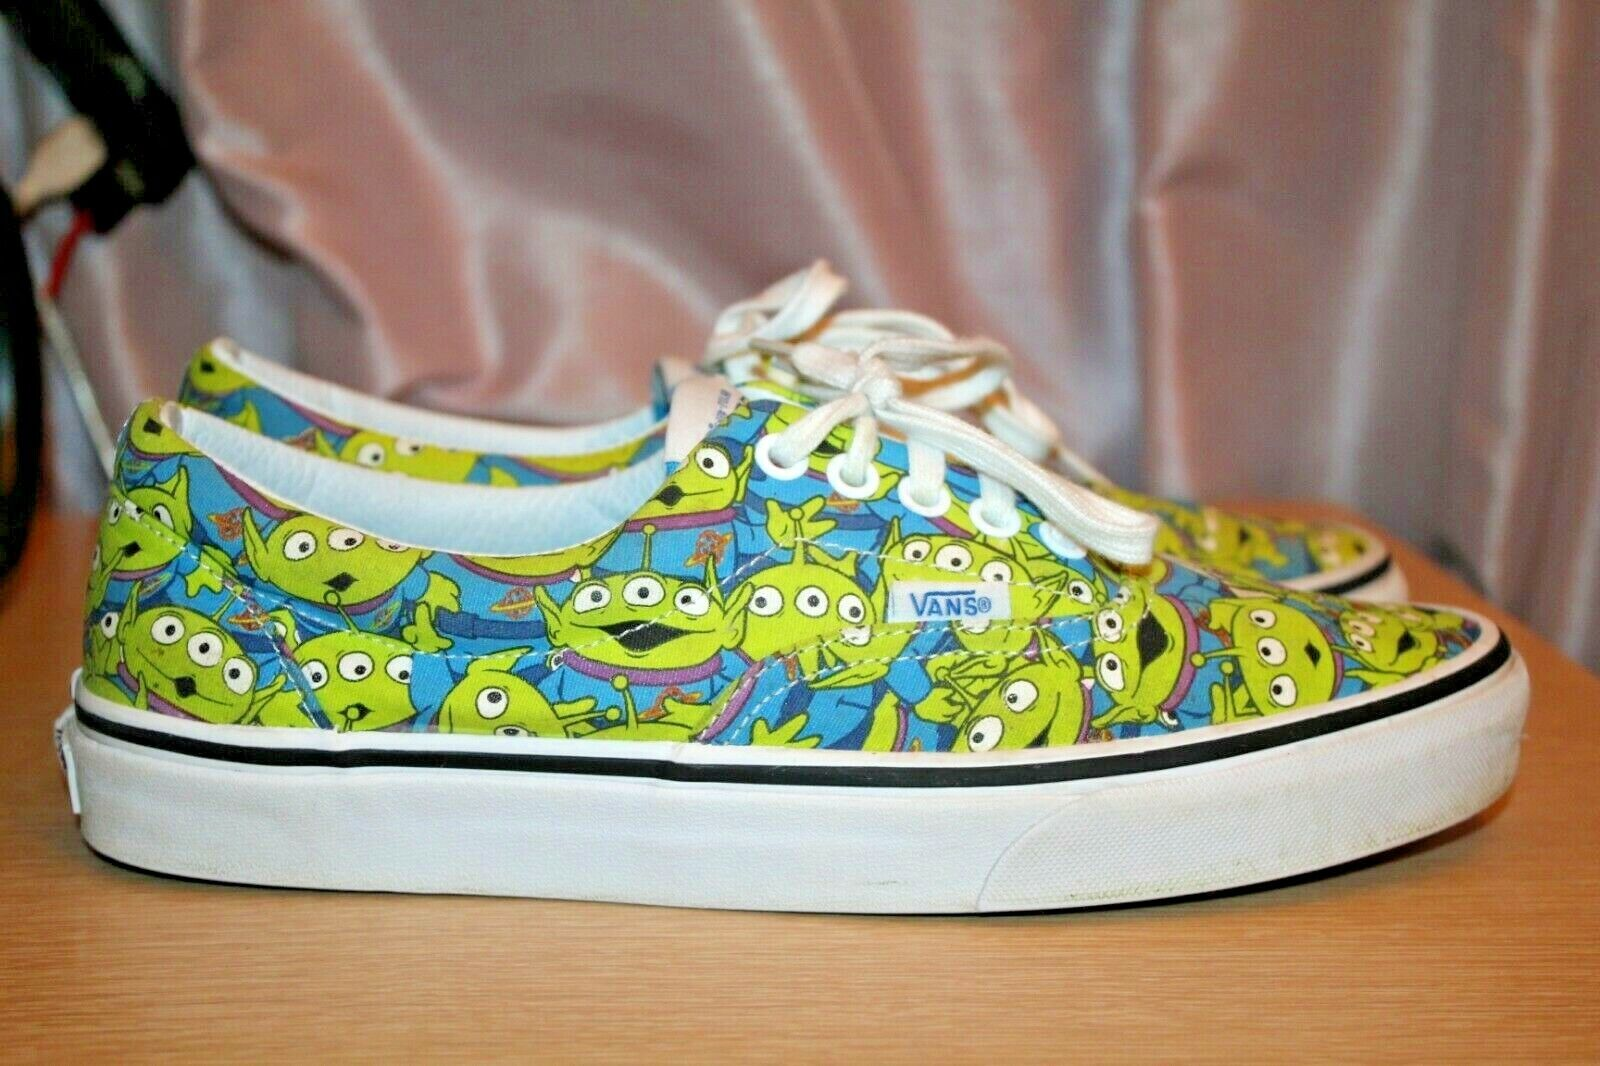 Terrible Comprimir predicción  Disney VANS Shoes SNEAKERS Mens Toy Story Aliens Glow in The Dark Size 11  for sale online | eBay